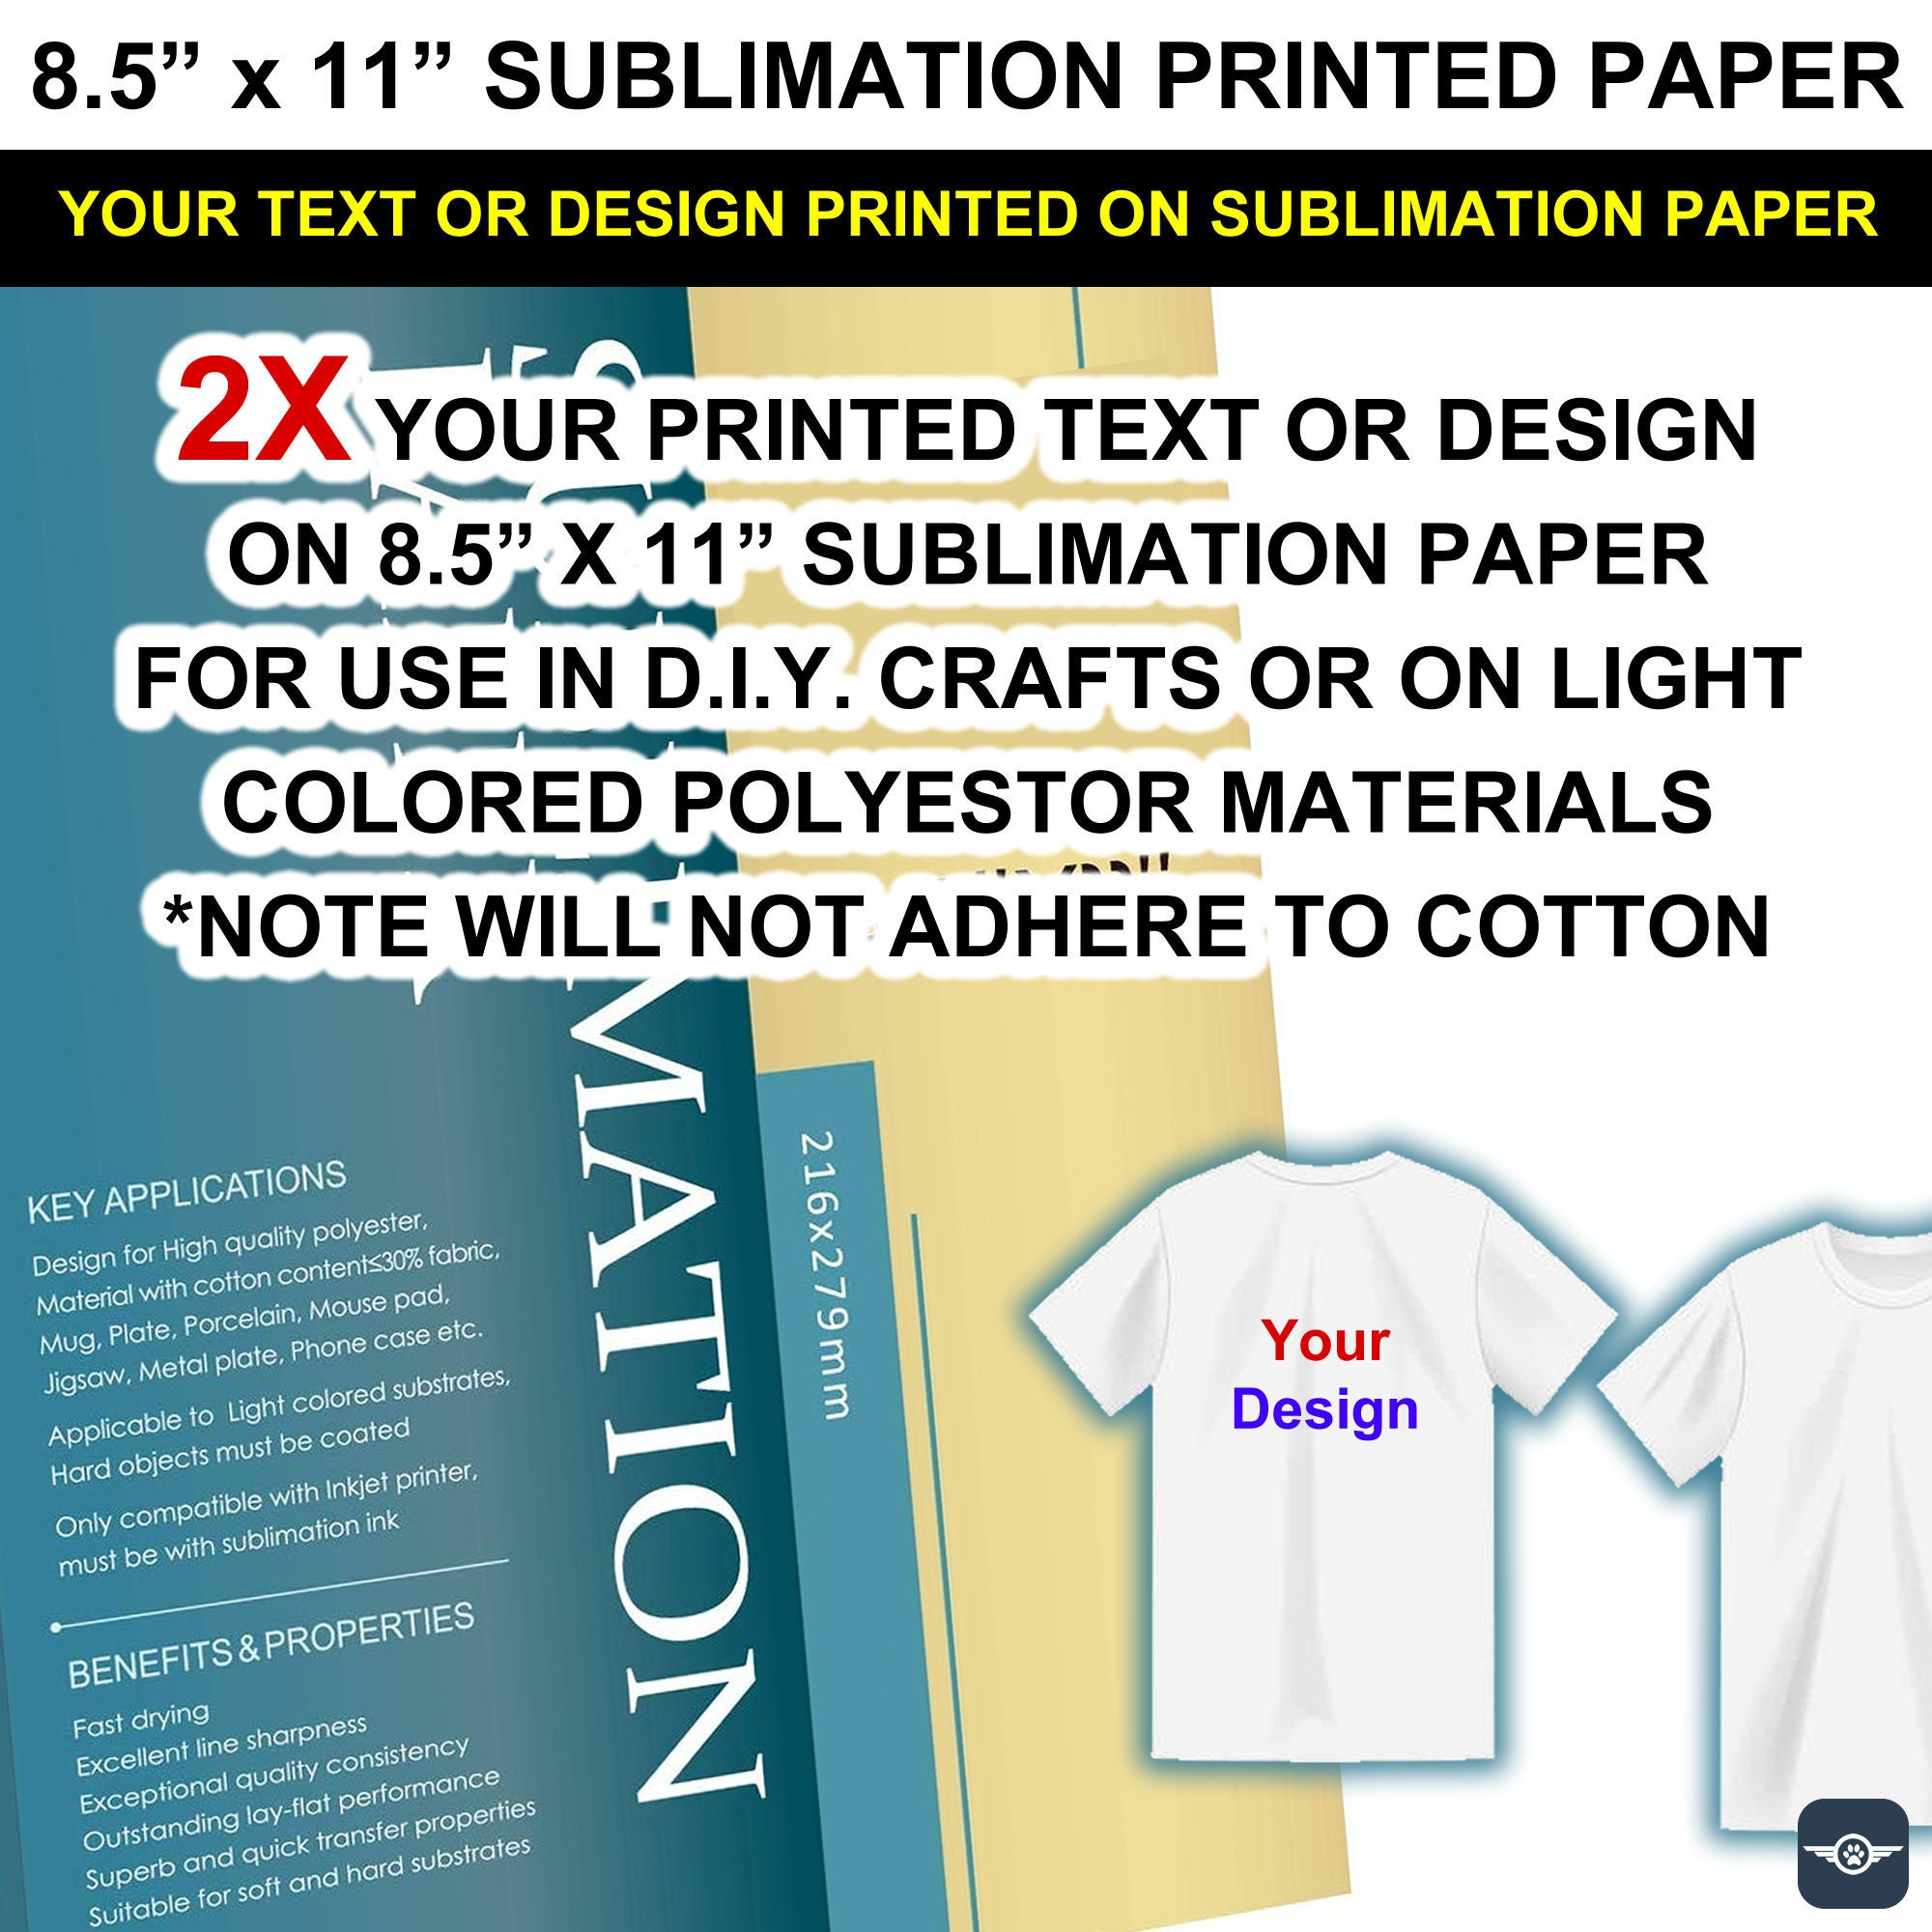 Your text or design printed on 2X - 8.5